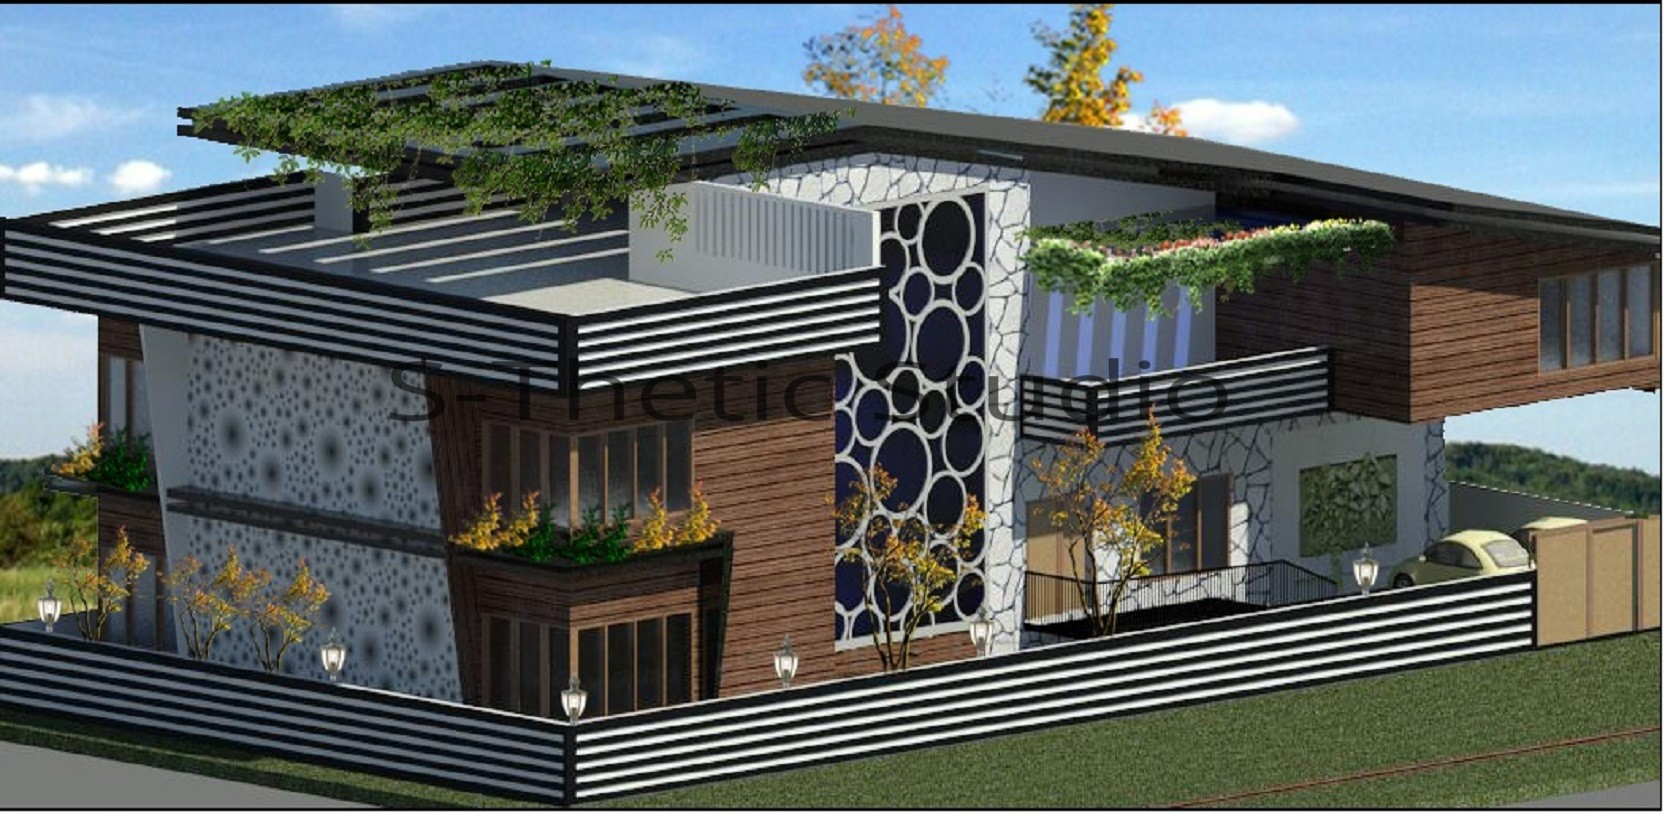 Architectural Firms in Mira Road